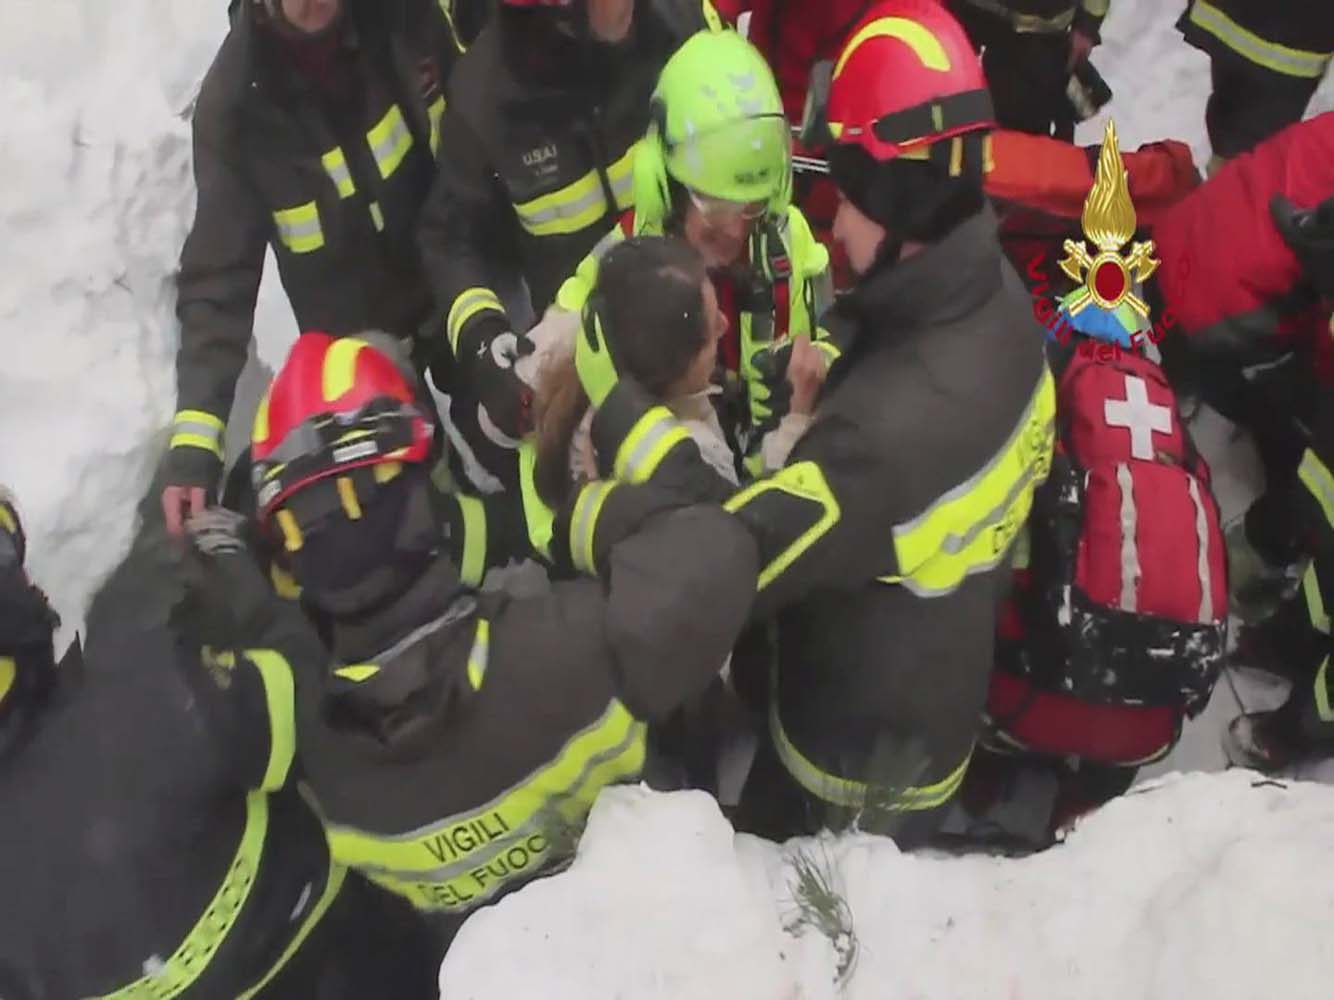 Firefighters rescue a survivor from Hotel Rigopiano in Farindola, central Italy, which was hit by an avalanche, in this handout picture released on January 20, 2017 by Italy's Fire Fighters. Vigili del Fuoco/Handout via REUTERS ATTENTION EDITORS - THIS IMAGE WAS PROVIDED BY A THIRD PARTY. EDITORIAL USE ONLY. TPX IMAGES OF THE DAY